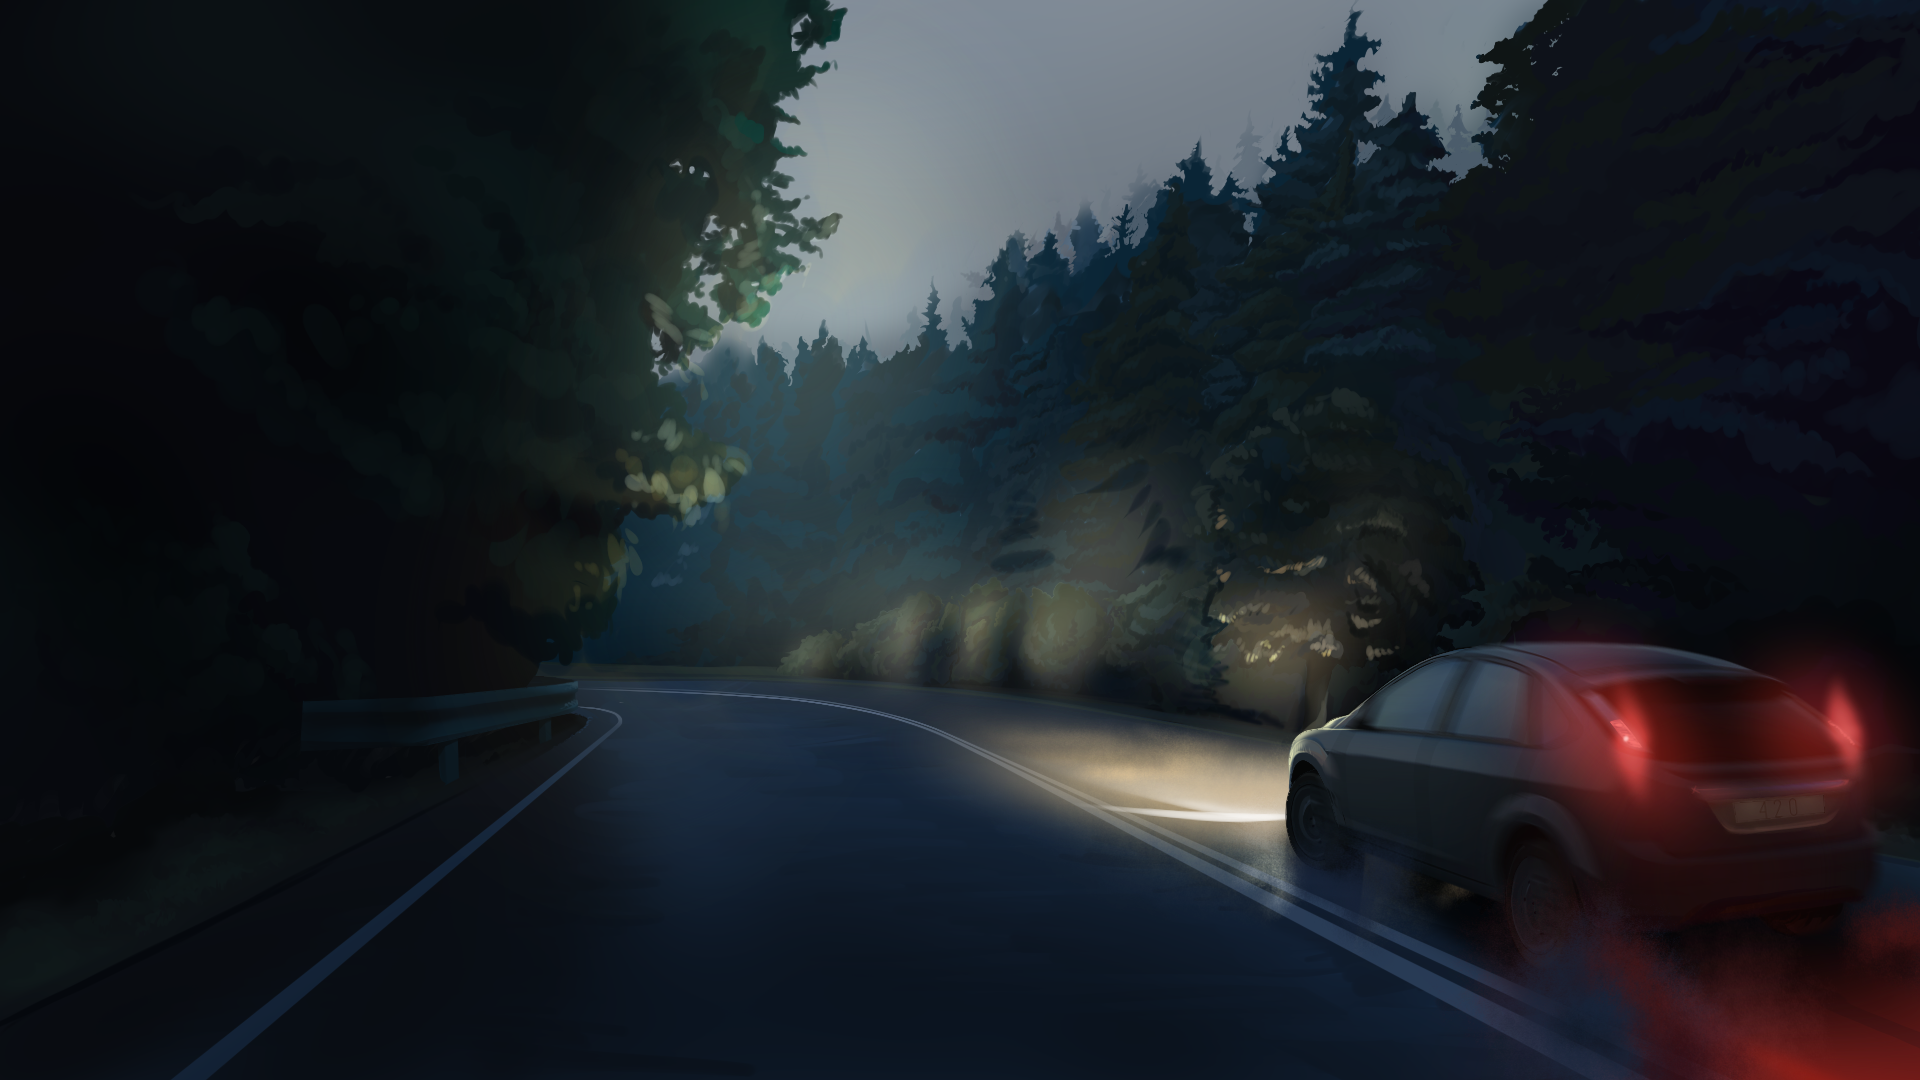 Dark Road With Car Hd Wallpaper Background Image 1920x1080